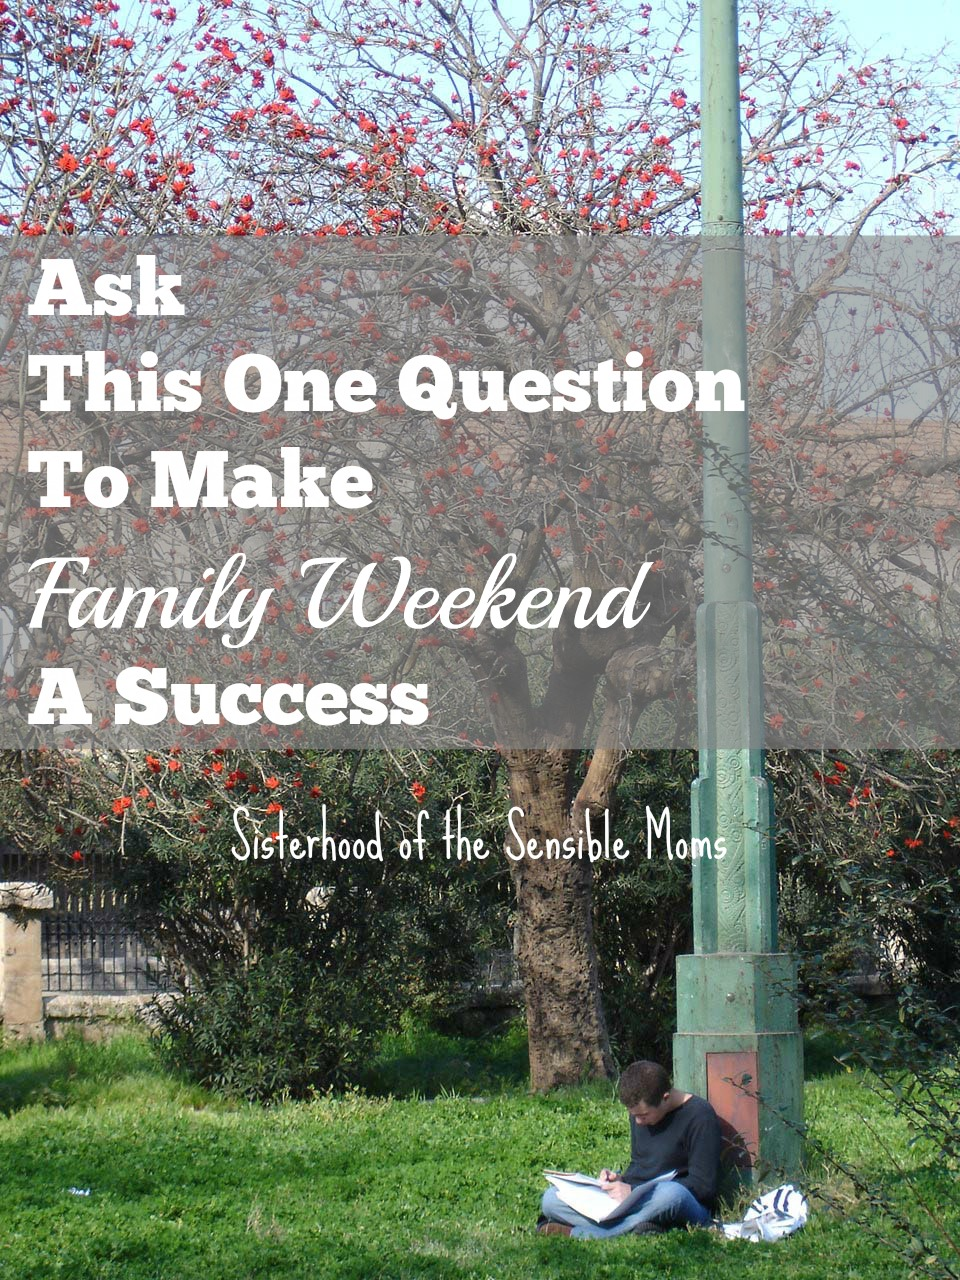 There's so much anticipation surrounding visiting your freshman in college that the weekend can actually flop. Ask this one question to make family weekend a success. | Parenting | Sisterhood of the Sensible Moms